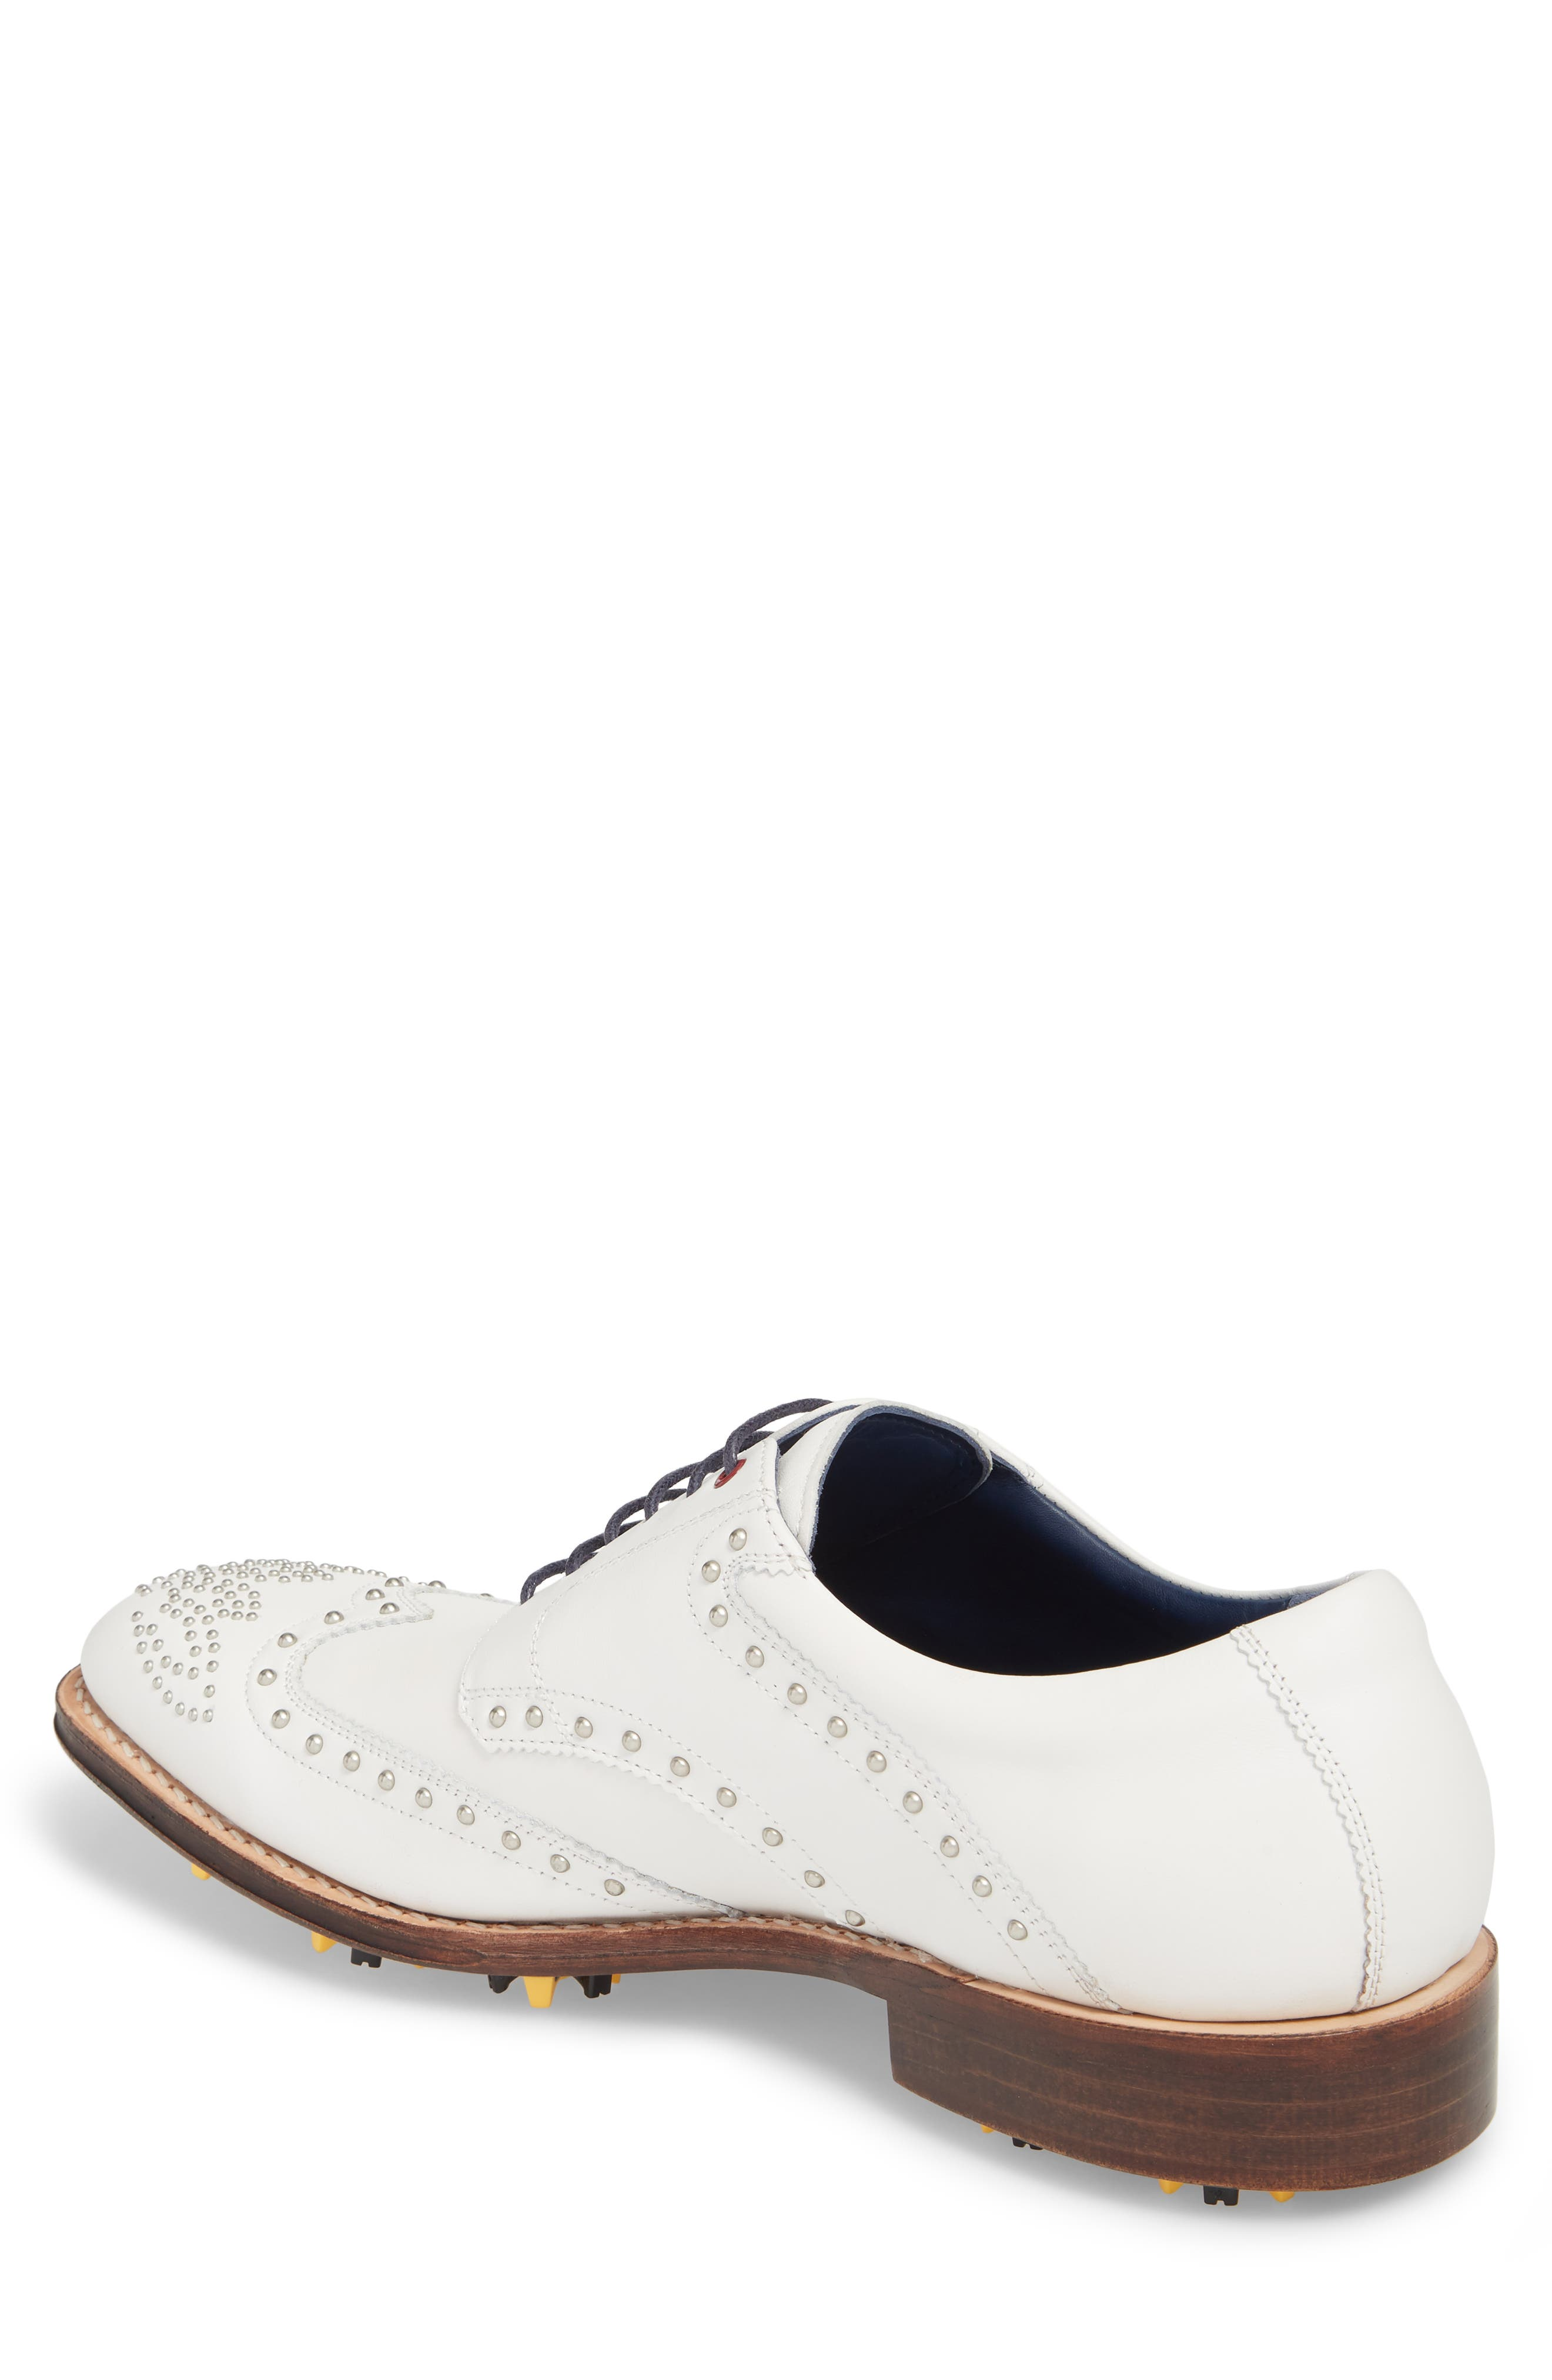 Rocker Plain Toe Oxford with Removable Cleats,                             Alternate thumbnail 2, color,                             White Leather